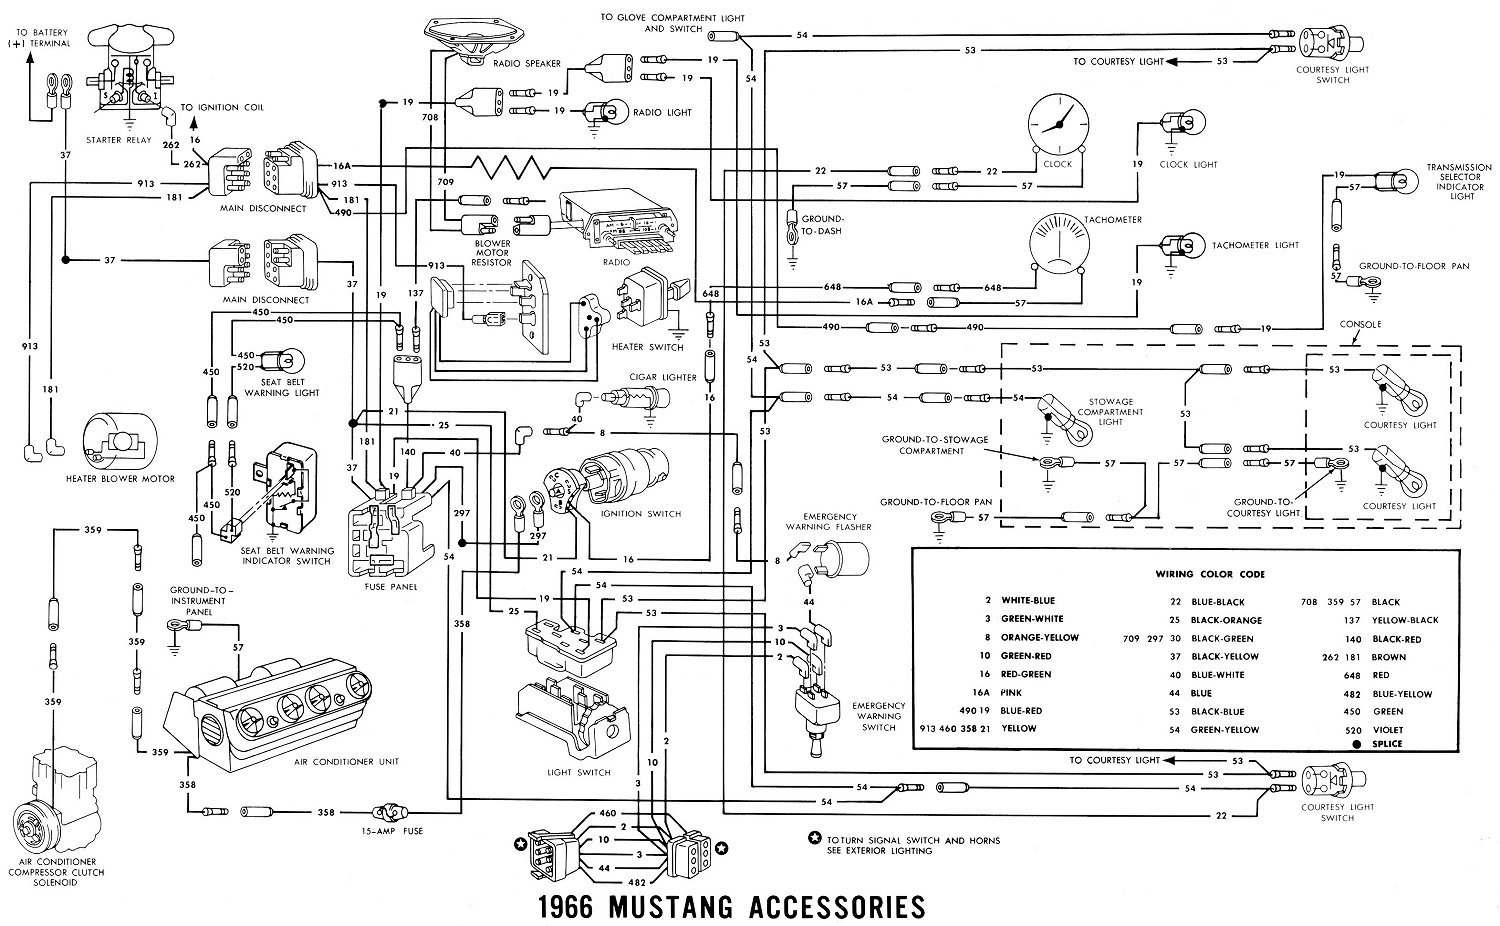 112253d1286219572 1966 mustang curtesy light problem 1966 ford mustang accessories wiring diagram the 2002 ford escape v6 wiring diagram for the charging system Wiring Diagram for 1999 Ford Mustang at fashall.co